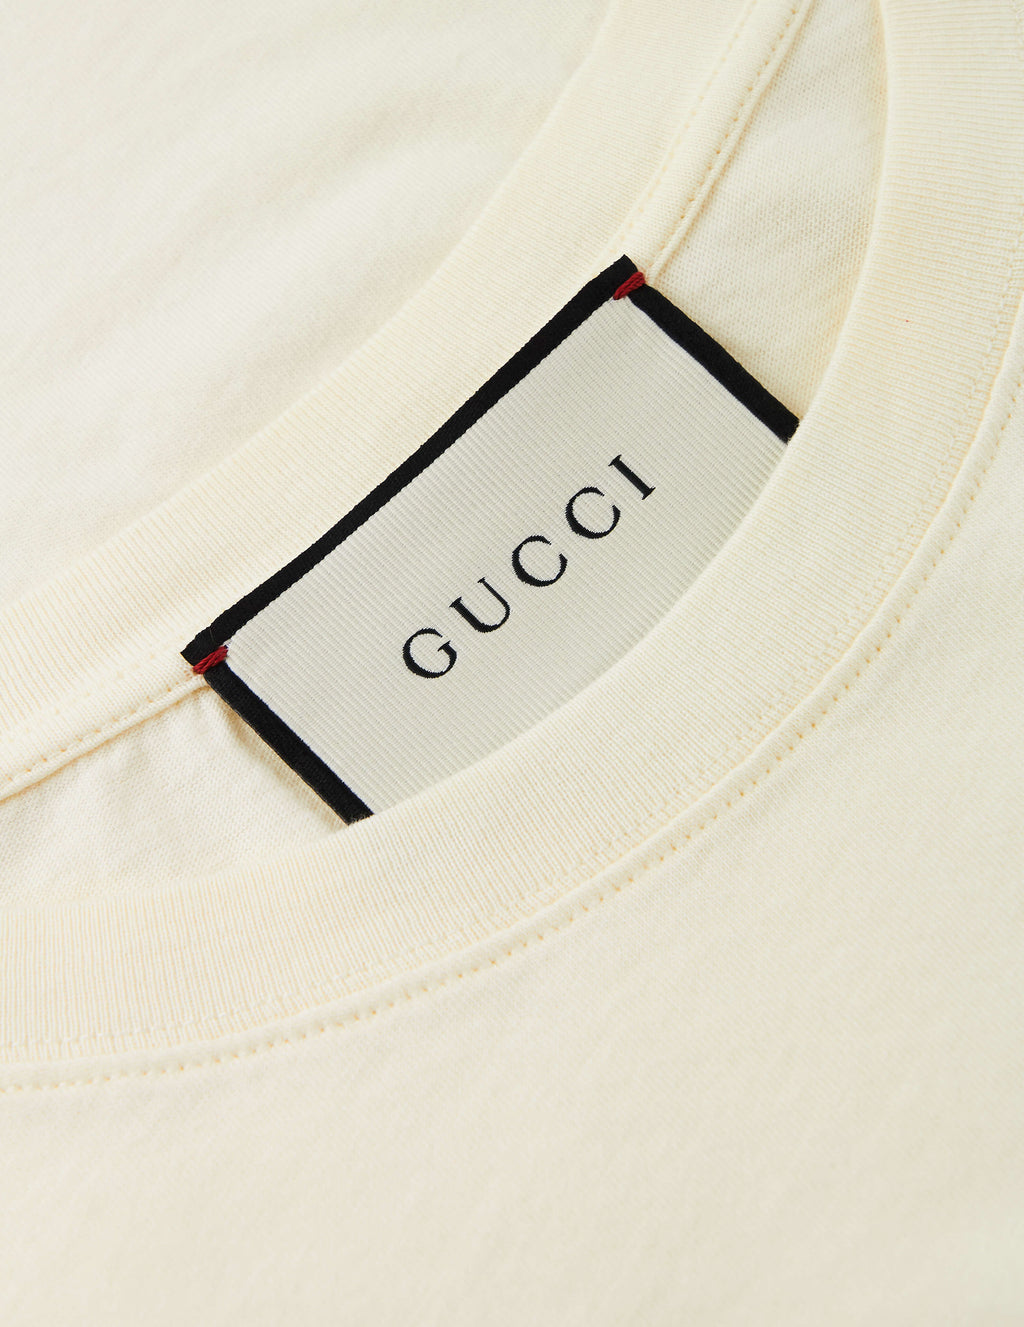 Gucci Men's Giulio Fashion Off White Winged Jockey T-Shirt 493117XJAN37136